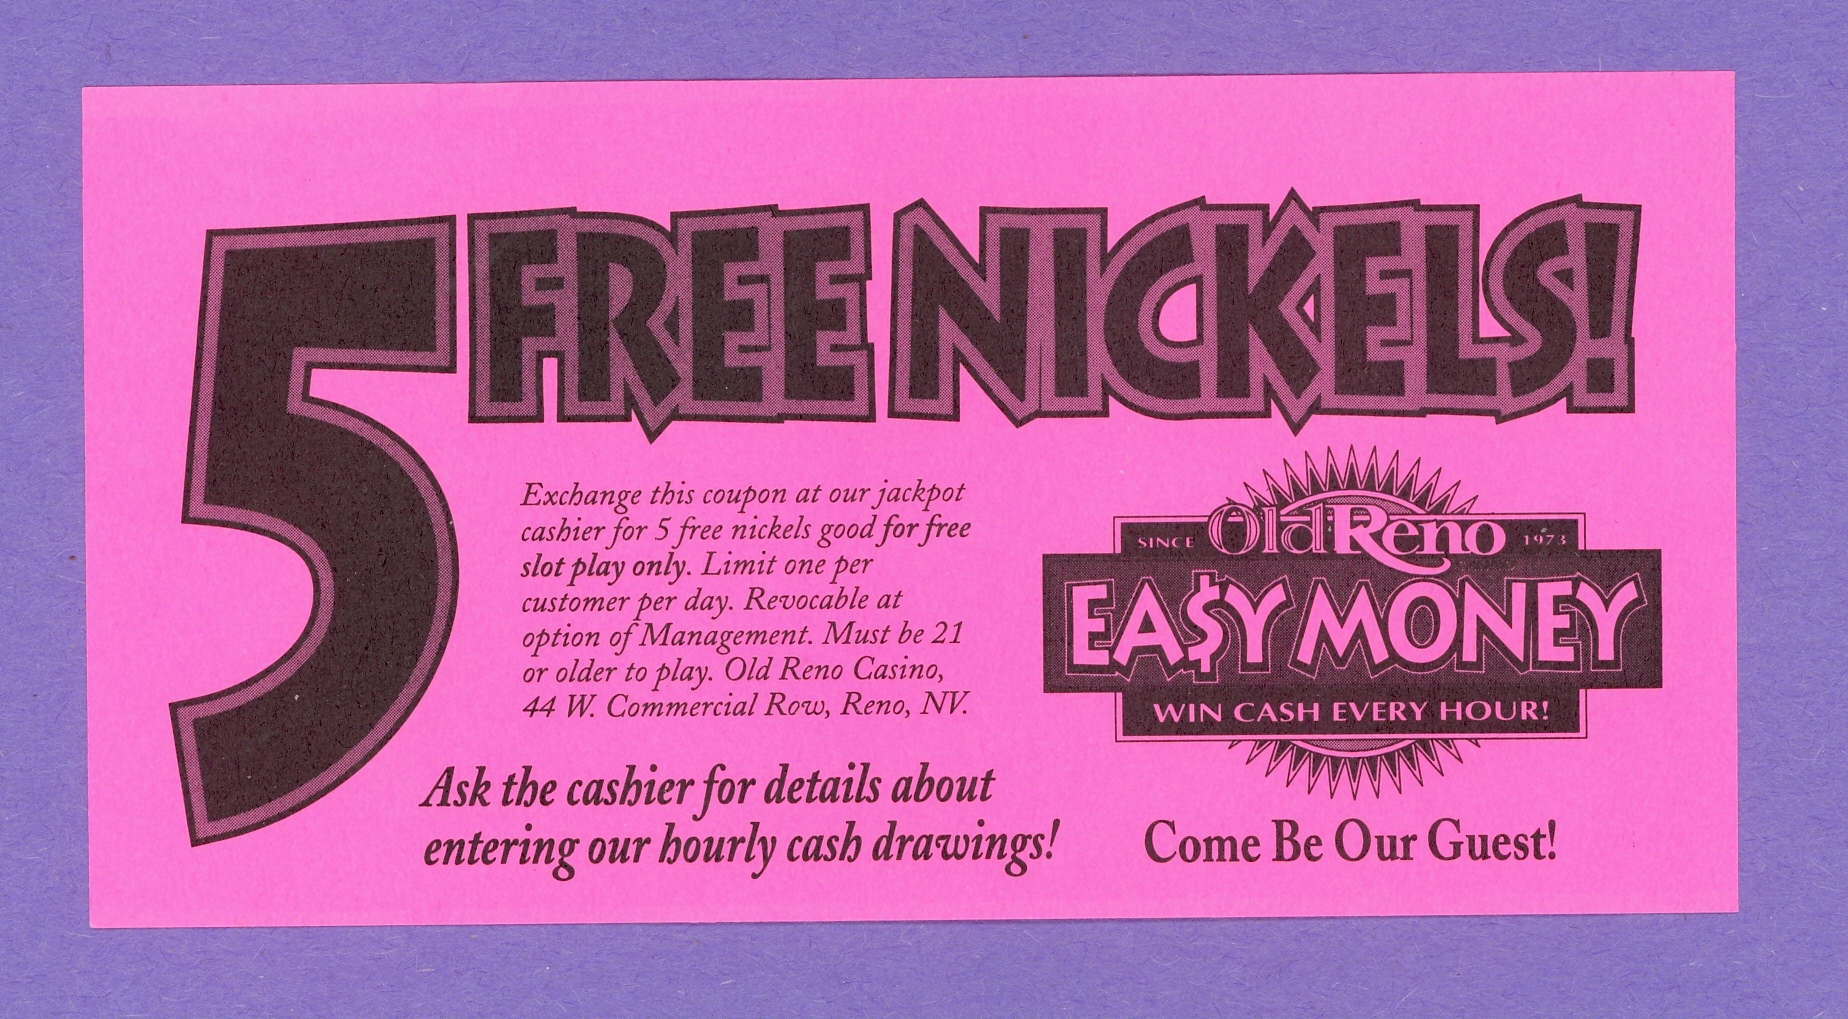 5 Free Nickels Old Reno Casino Reno Nevada